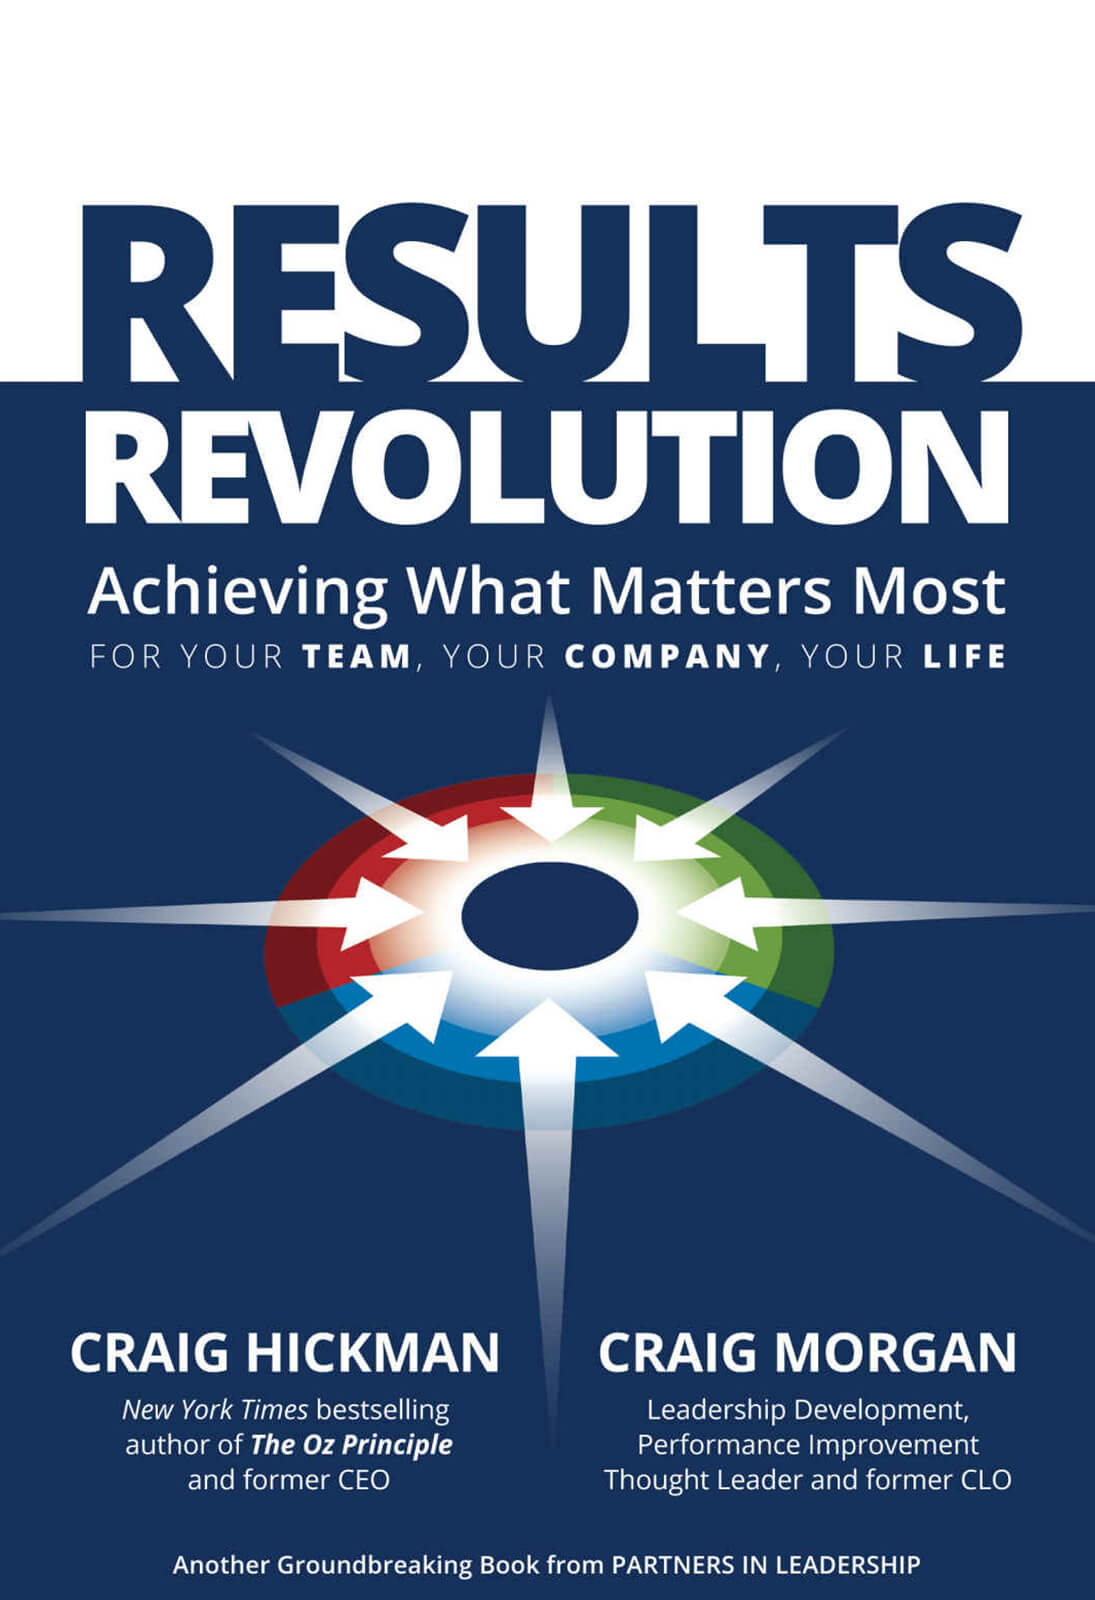 Results Revolution: Achieving What Matters Most Your Team, Your Company, Your Life